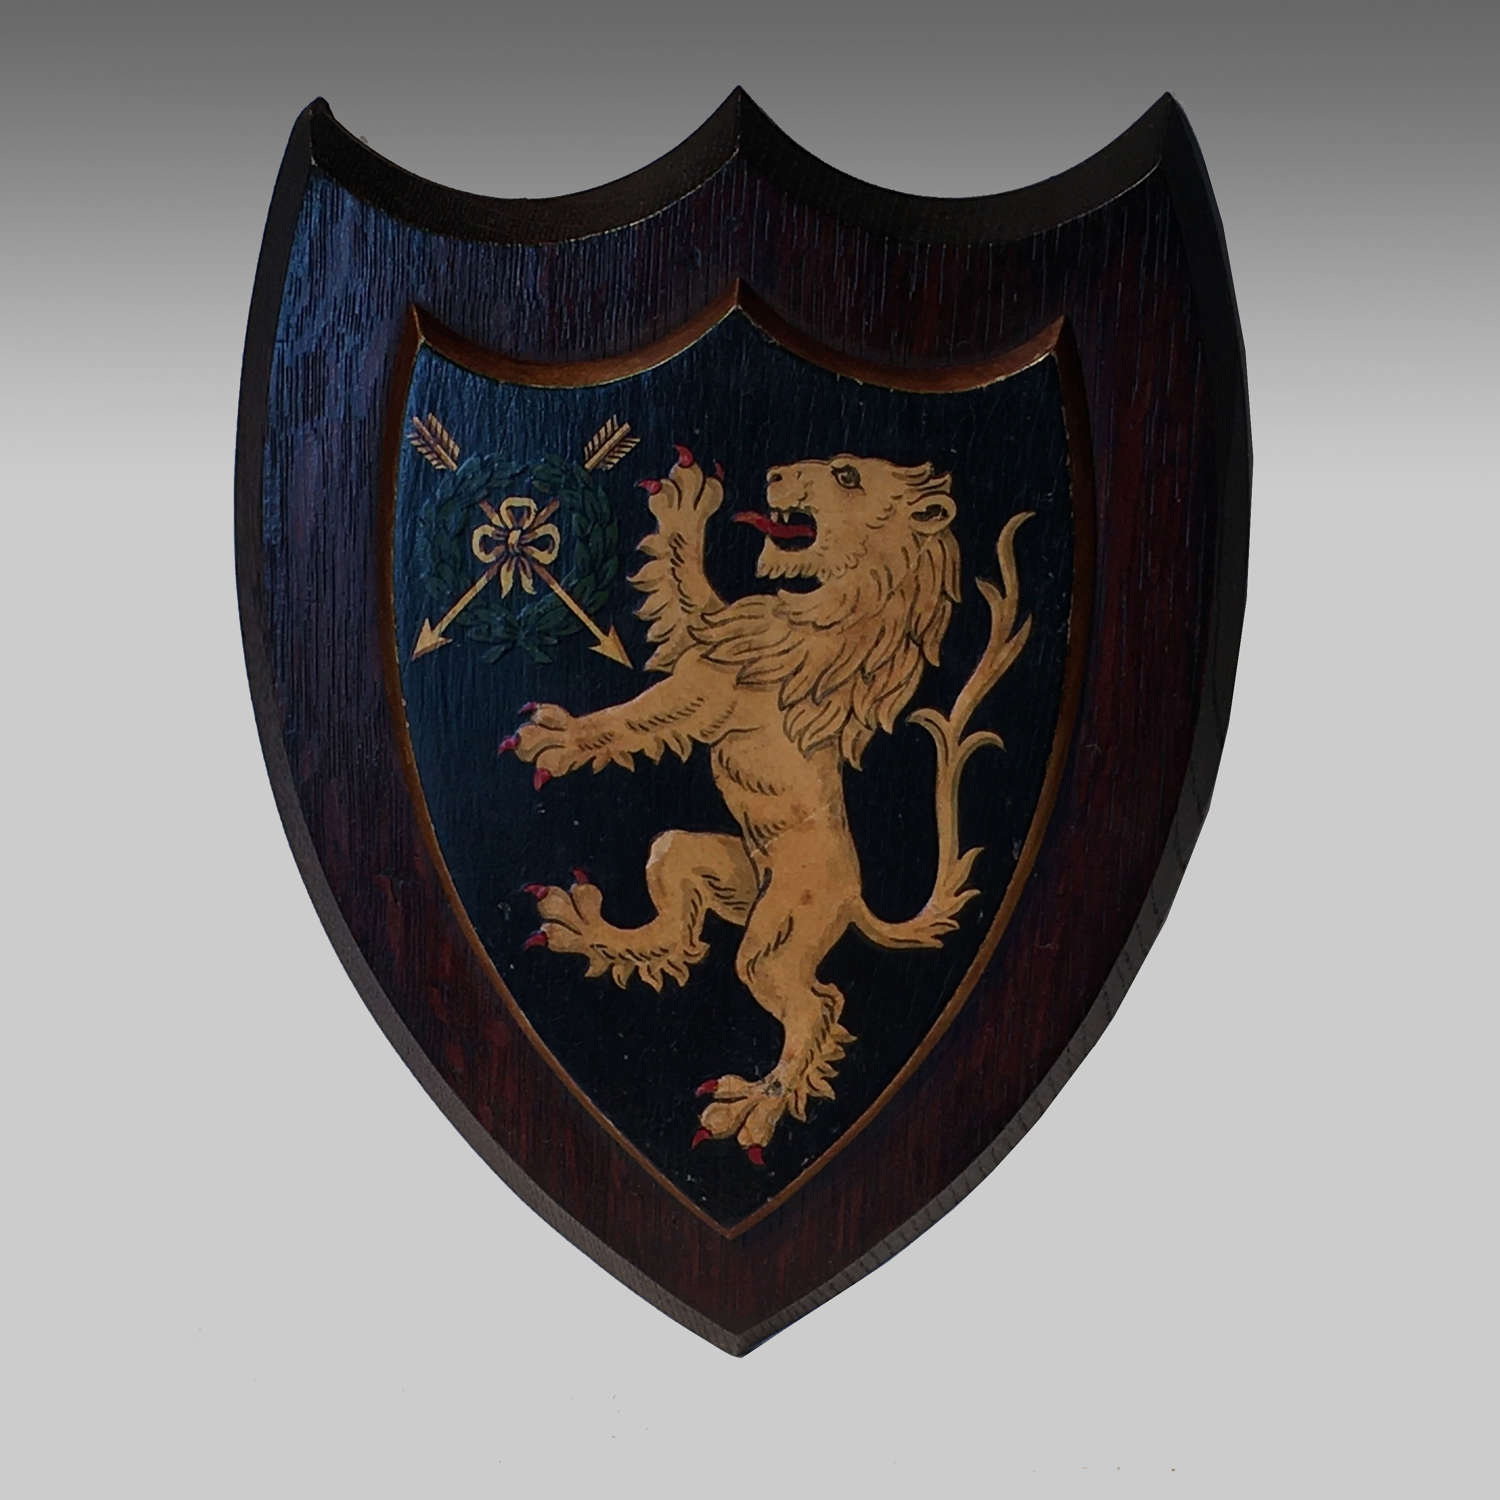 Vintage armorial oak shield for for Emmanuel College, Cambridge